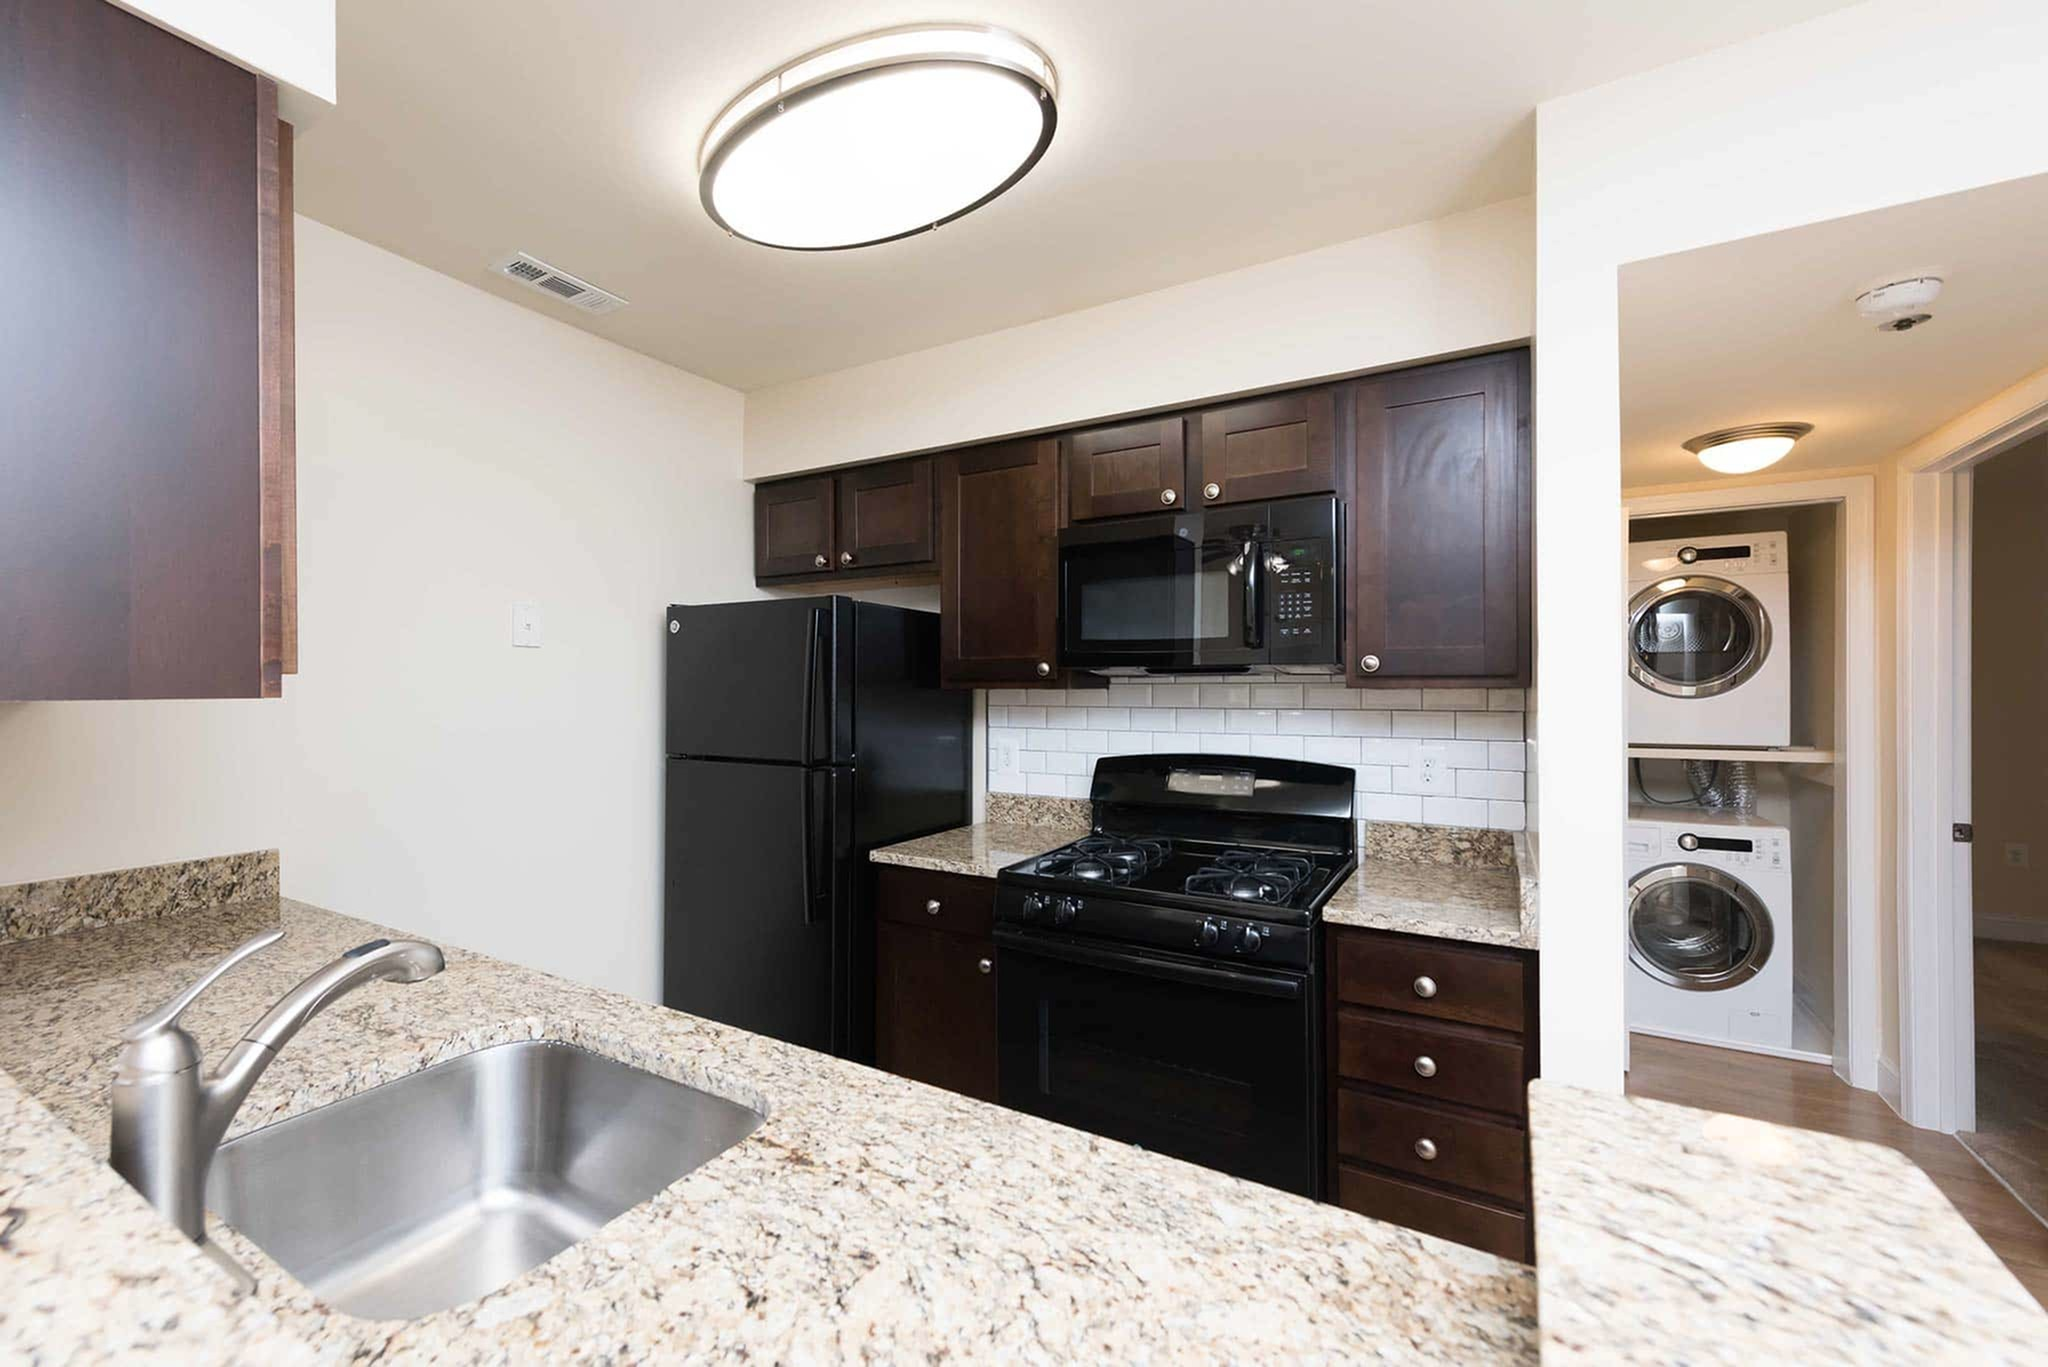 Gorgeous kitchen with dark wooden cabinets and marble sink decks in Yorkshire Apartments in Silver Spring, MD